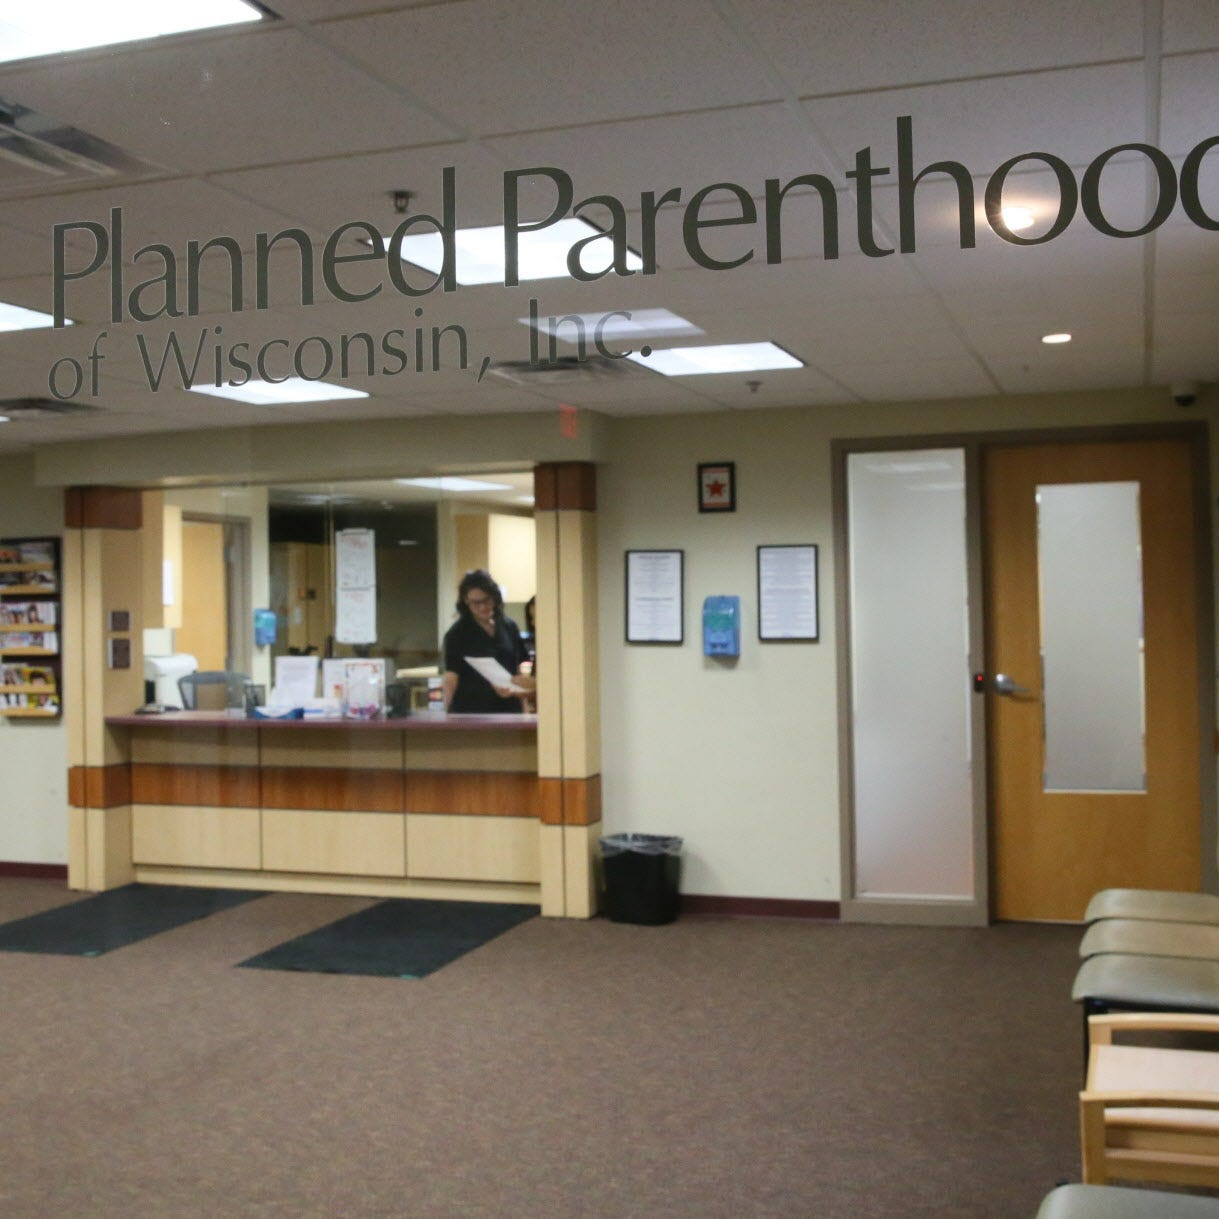 A Planned Parenthood of Wisconsin clinic in Milwaukee that opened on South 7th Street in 2017.